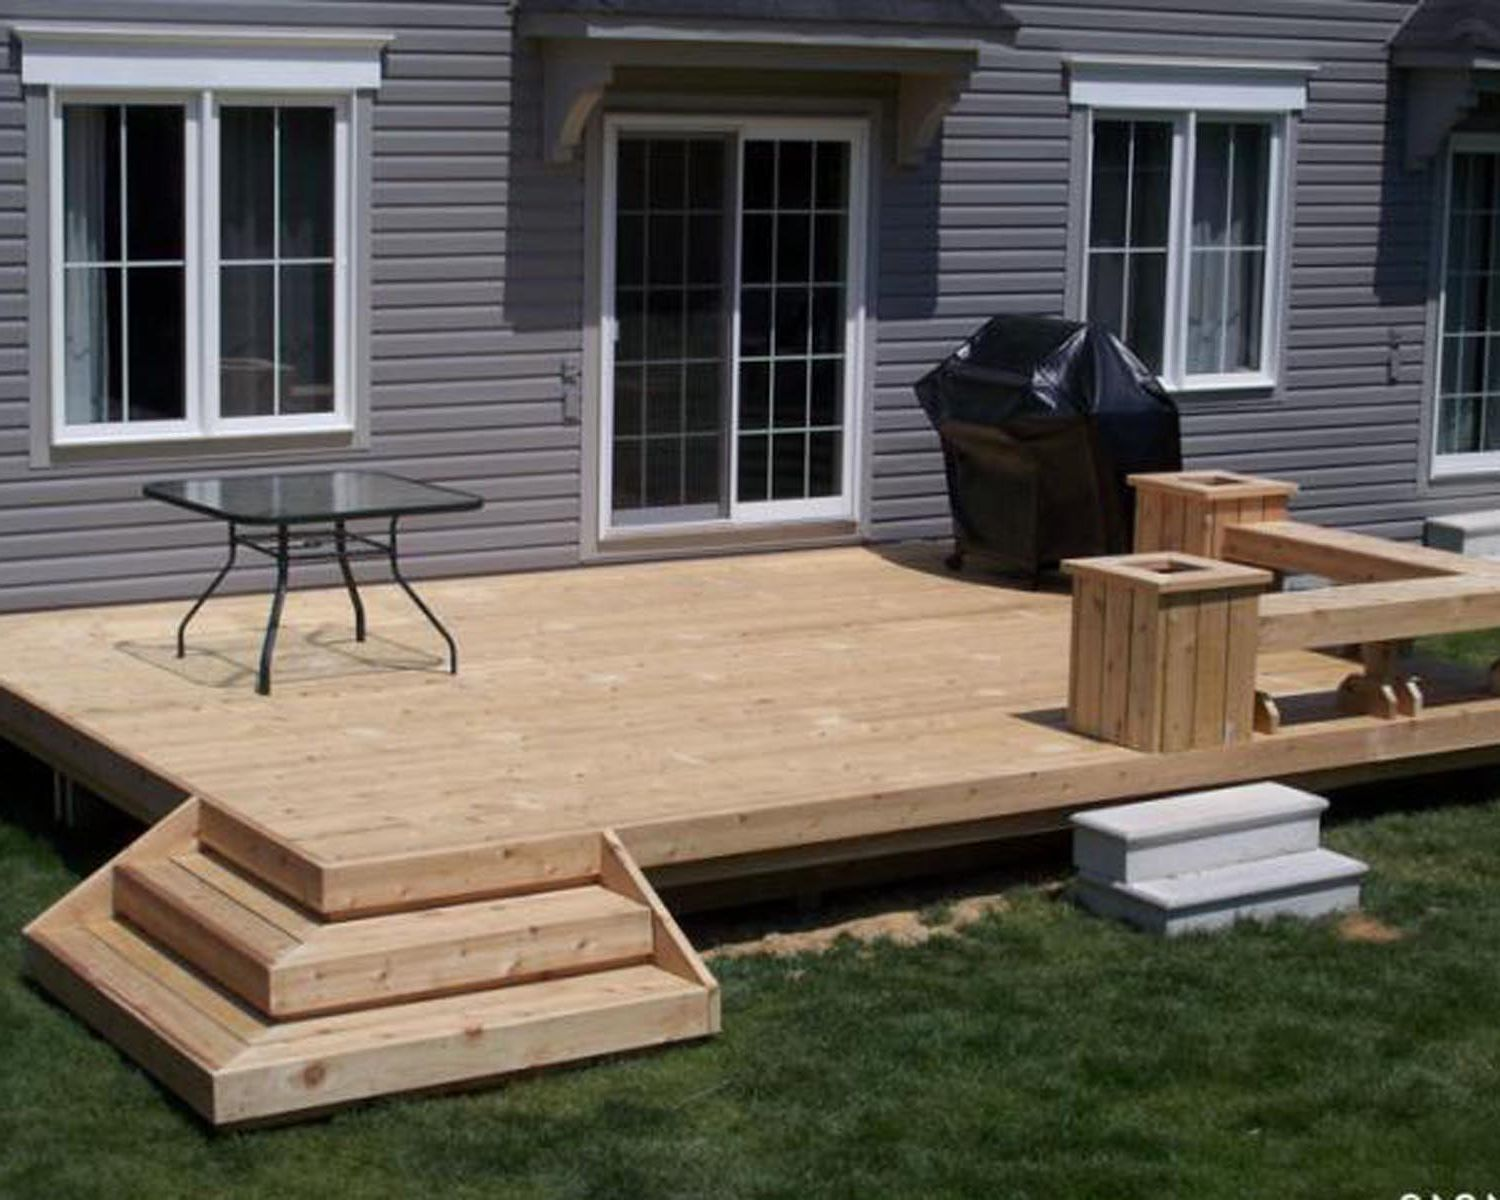 17 best ideas about small deck designs on pinterest patio deck designs decks and free deck plans - Ideas For Deck Designs